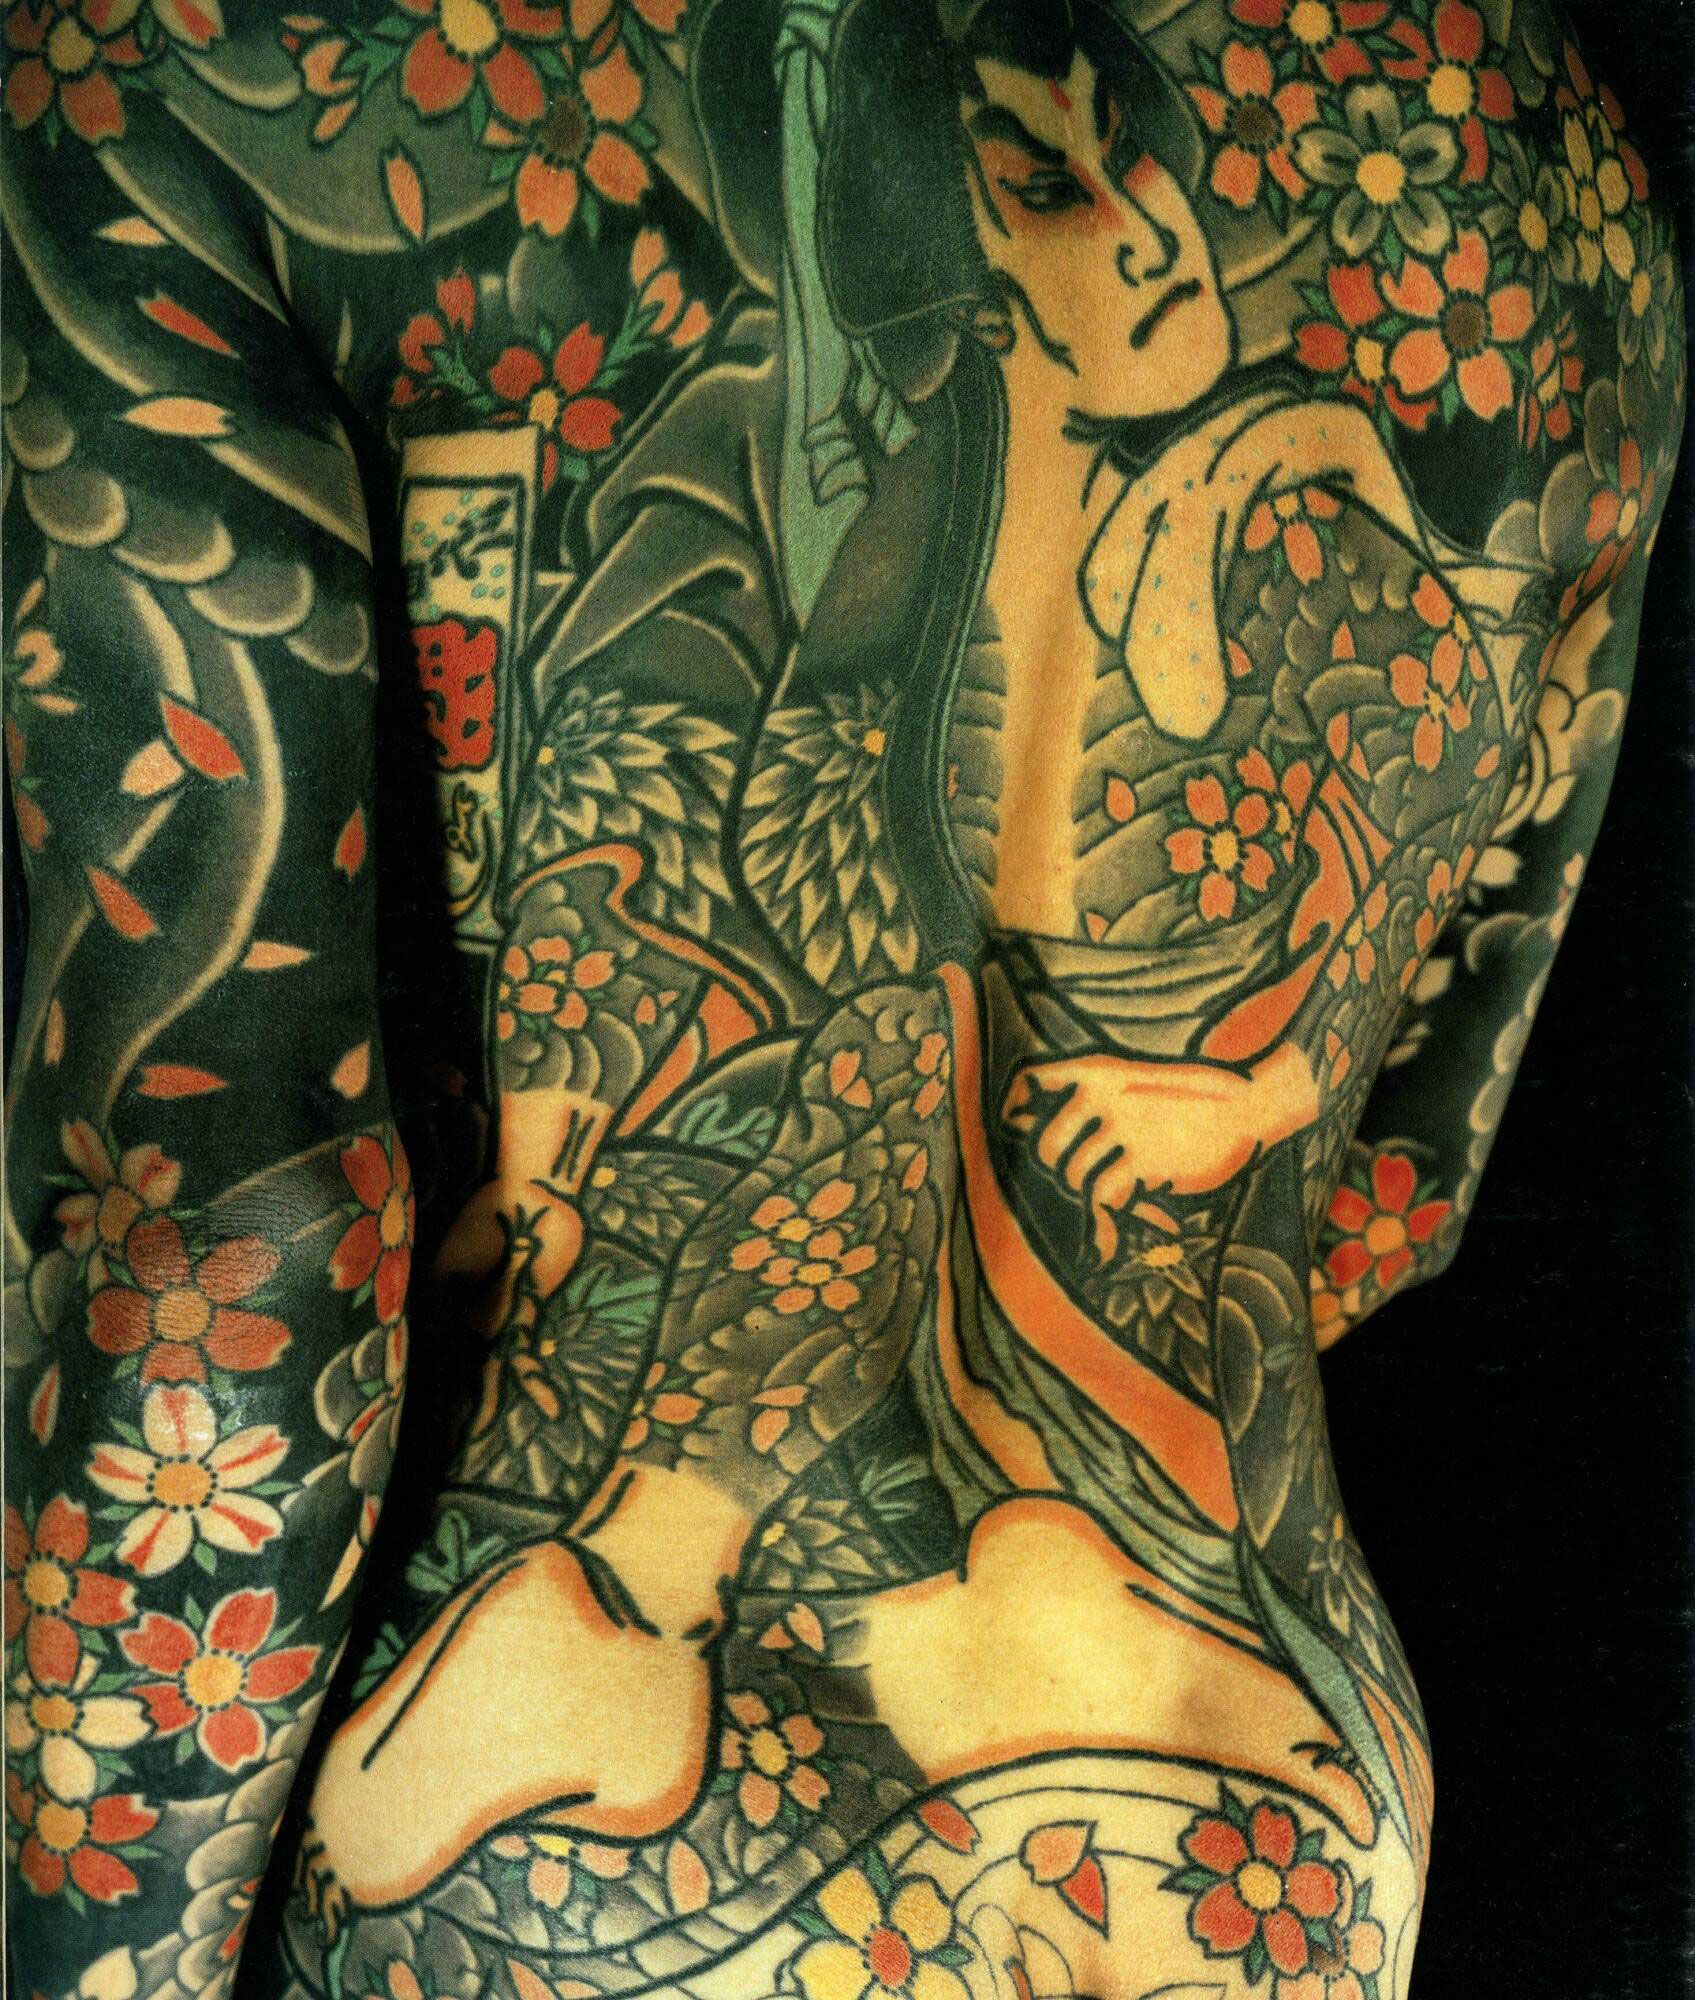 Japanese Tattoo Book Japanese Tattoo Art - Irezumi image from the book entitled the japanese tattoo by sandi fellman